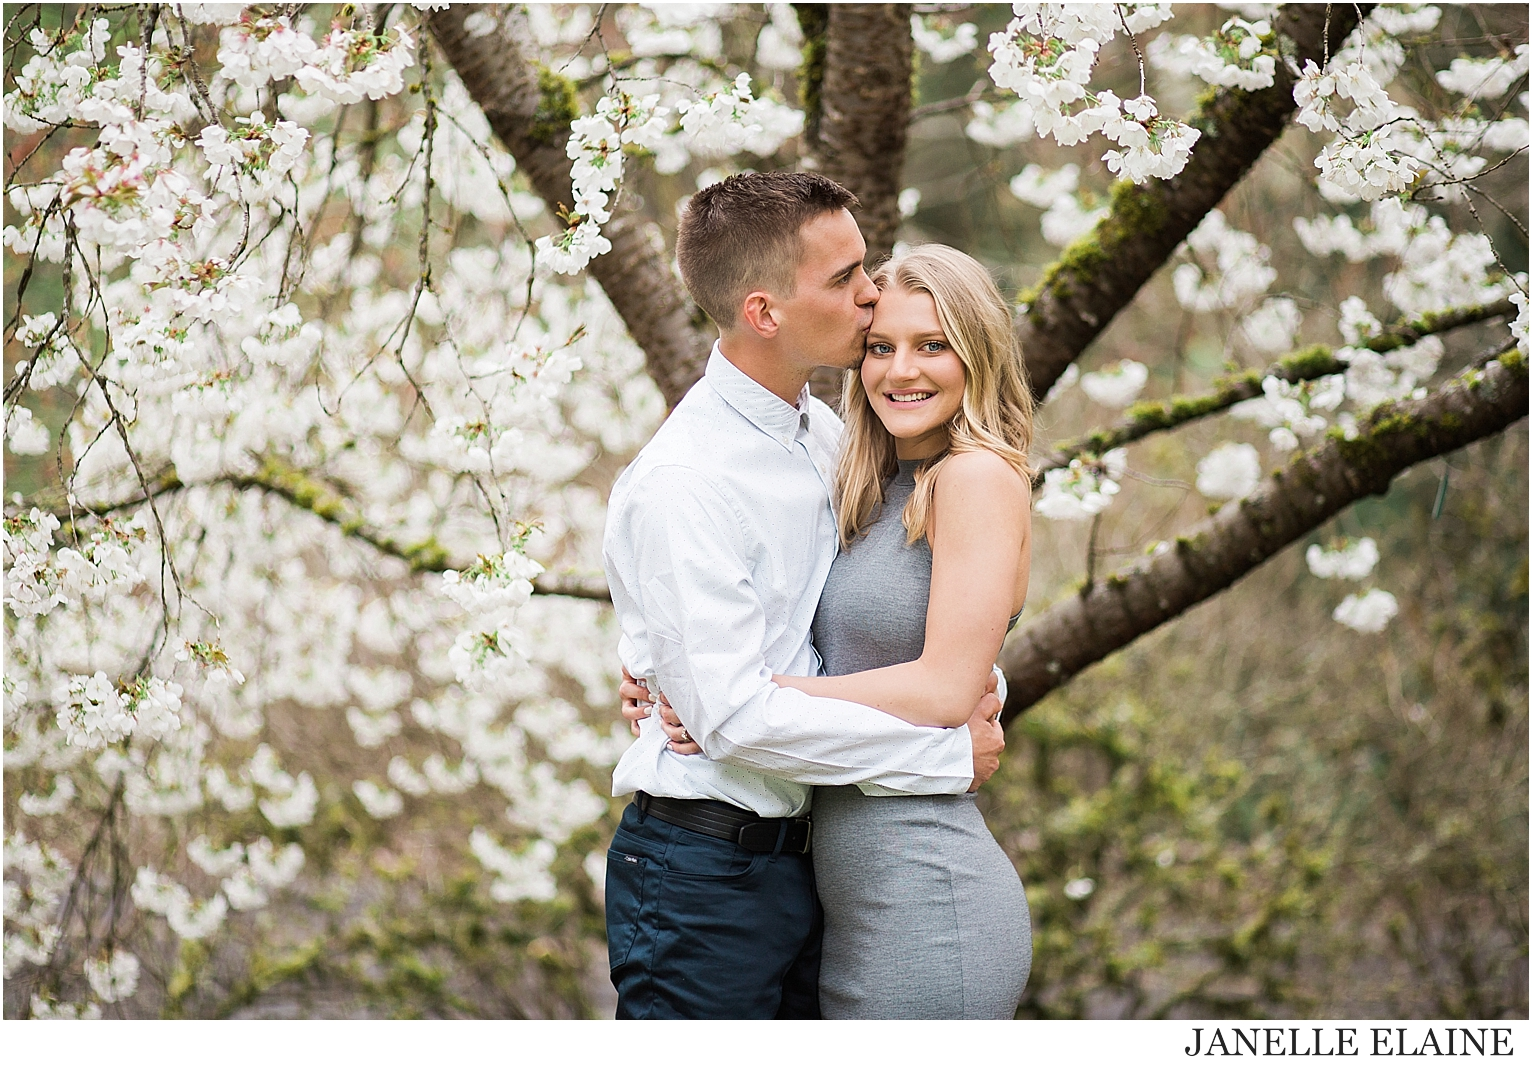 tricia and nate engagement photos-janelle elaine photography-13.jpg